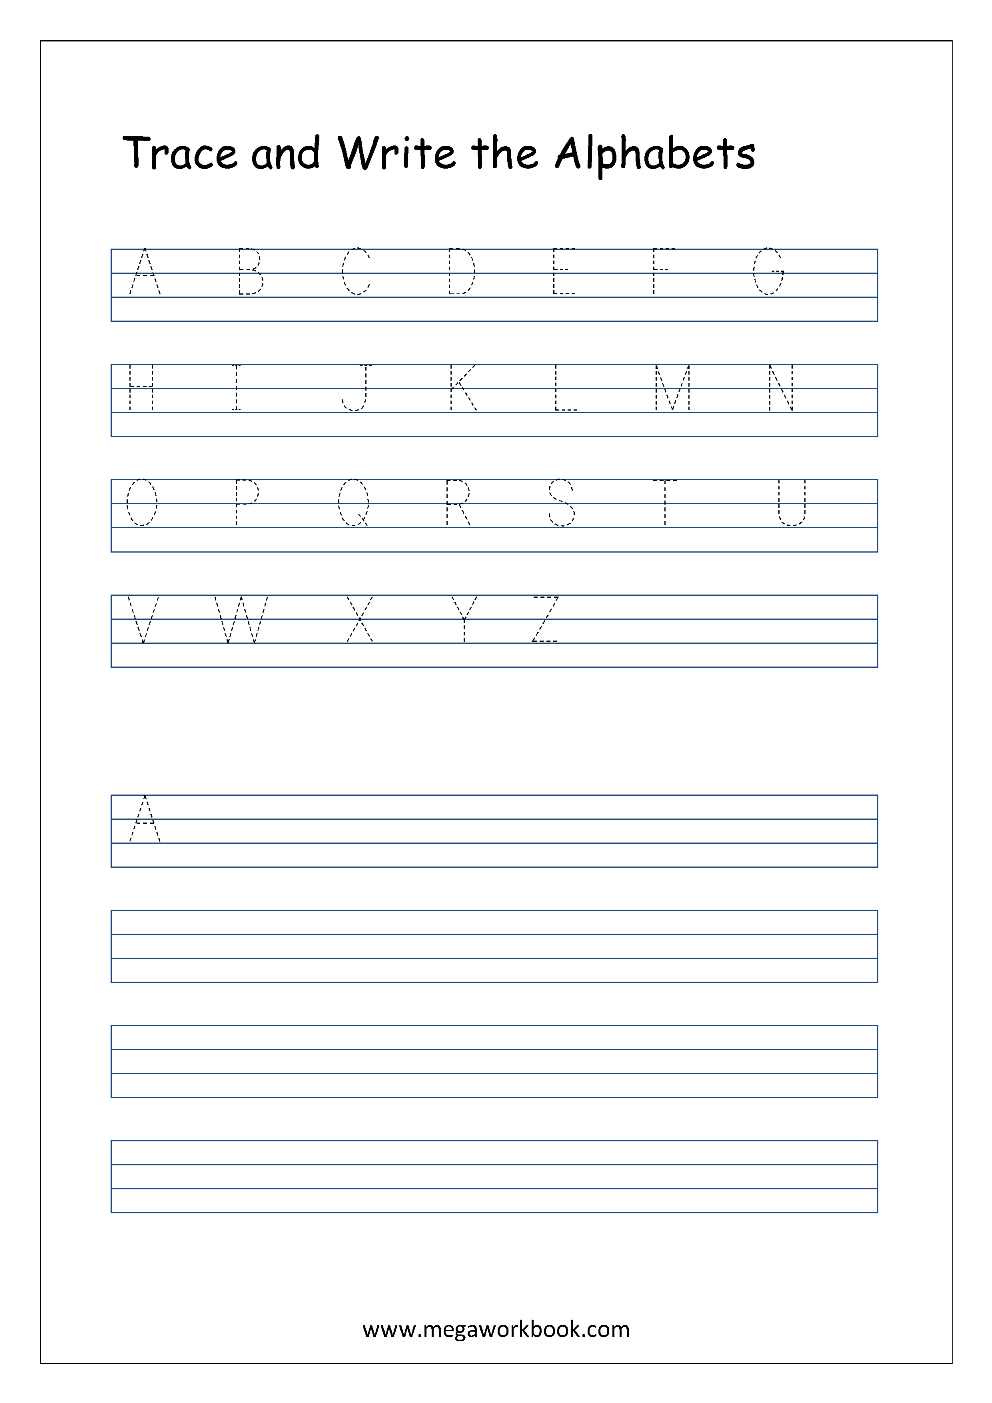 Worksheets A-z Writing Worksheets free english worksheets alphabet writing capital letters worksheet a z